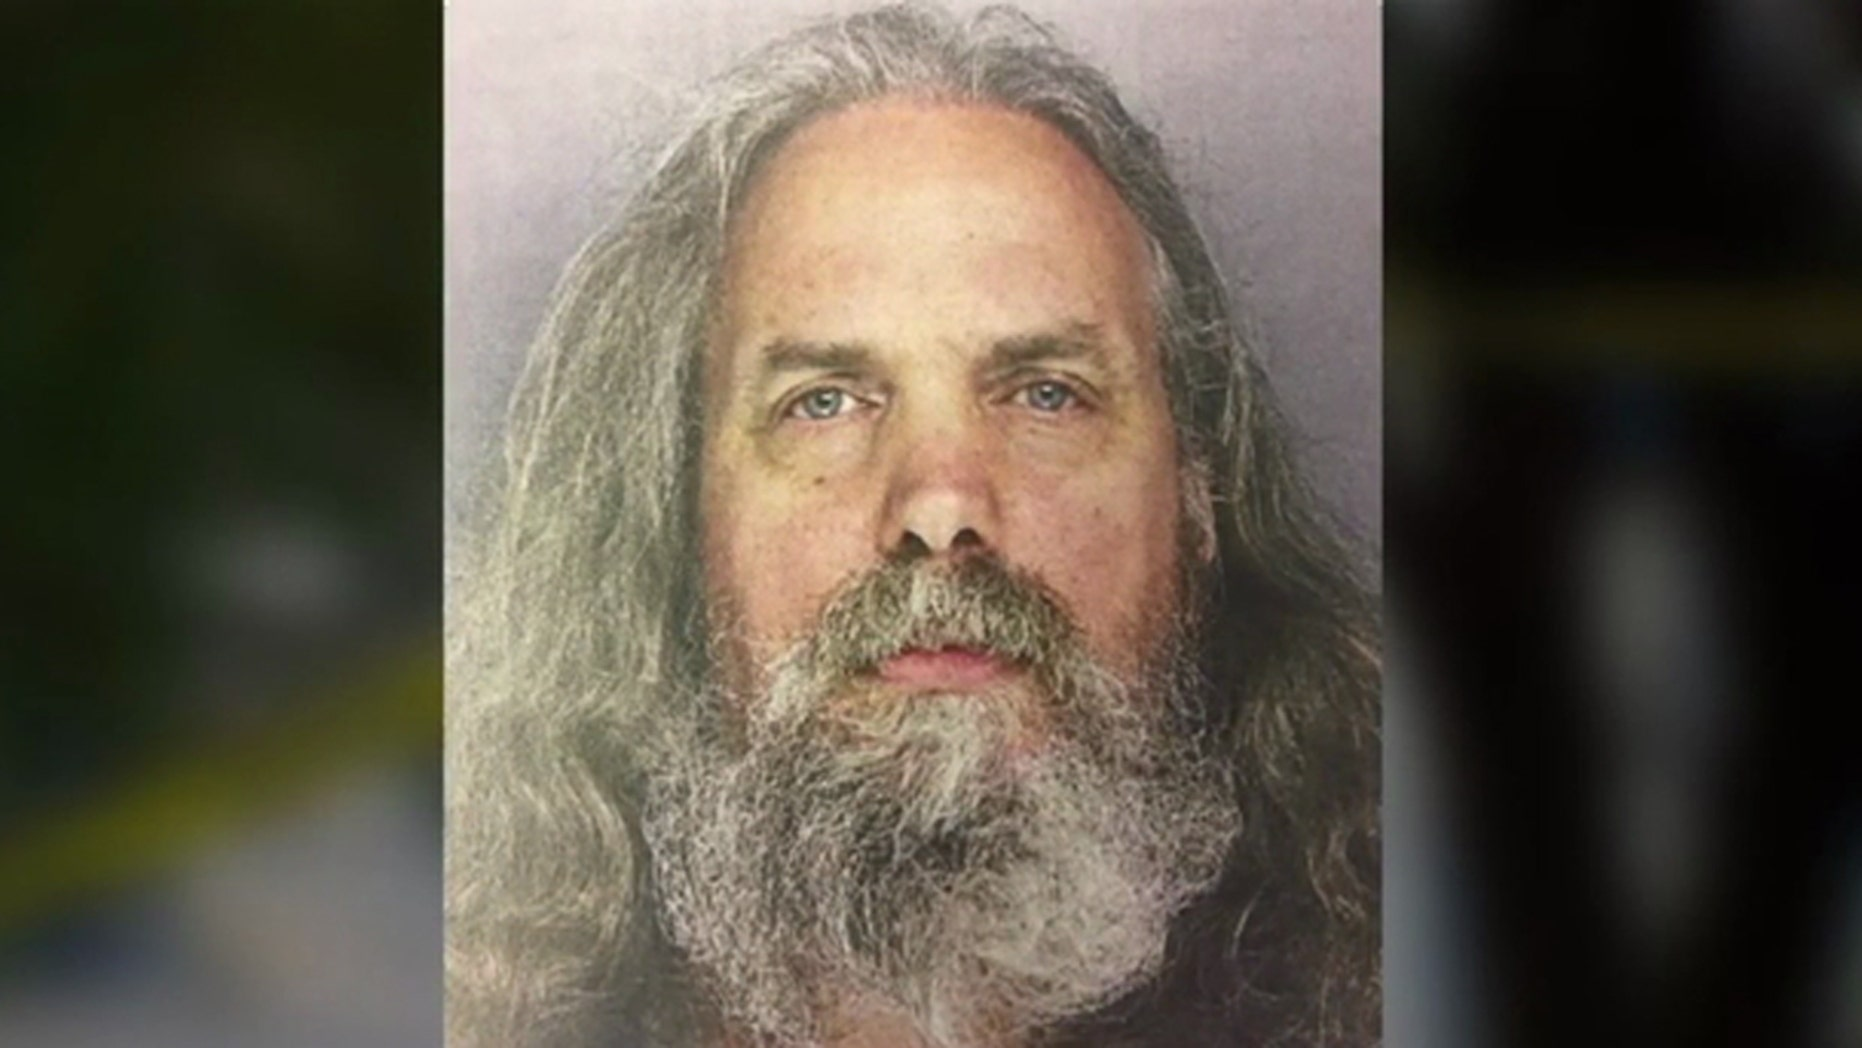 Lee Kaplan was sentenced up to 87 years in prison for sexually assaulting six girls he was 'gifted' in Pennsylvania.